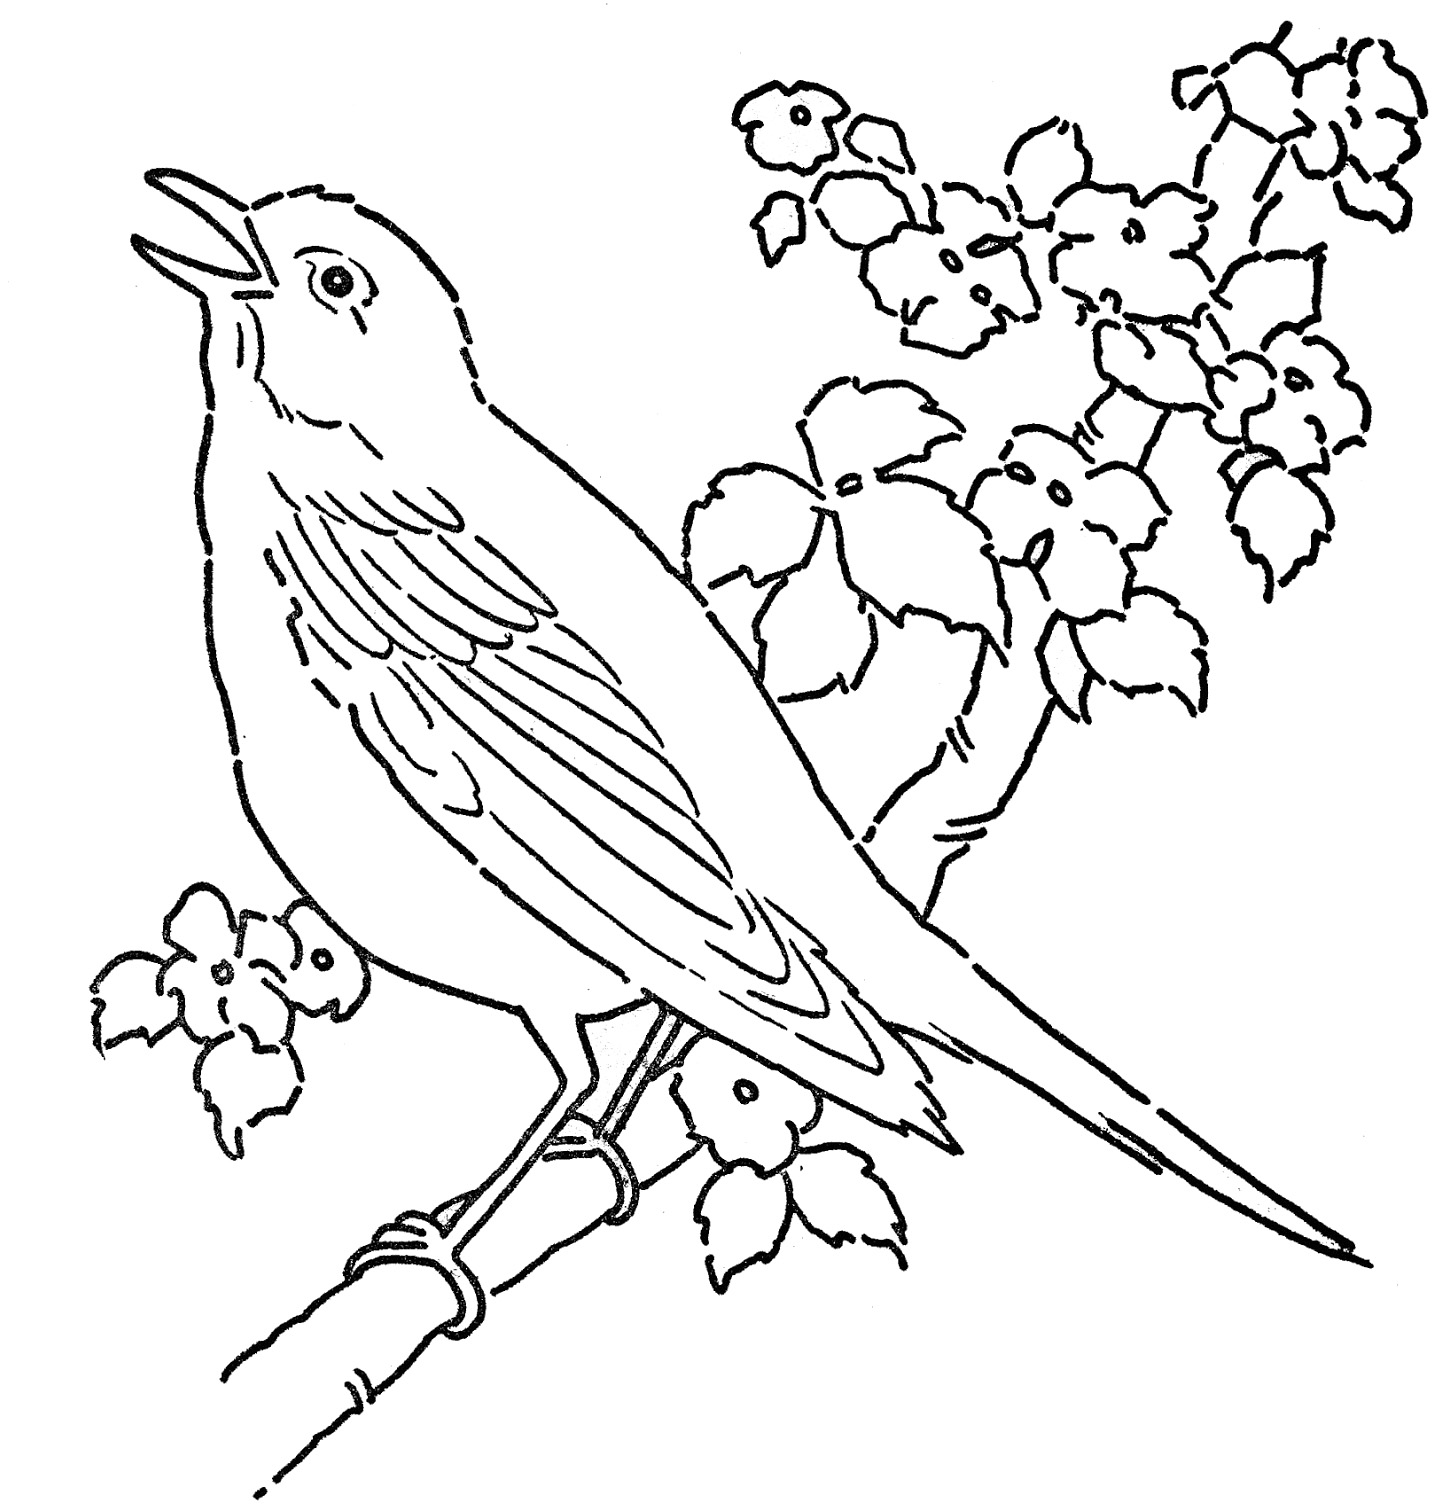 1449x1504 Birds Coloring Pages